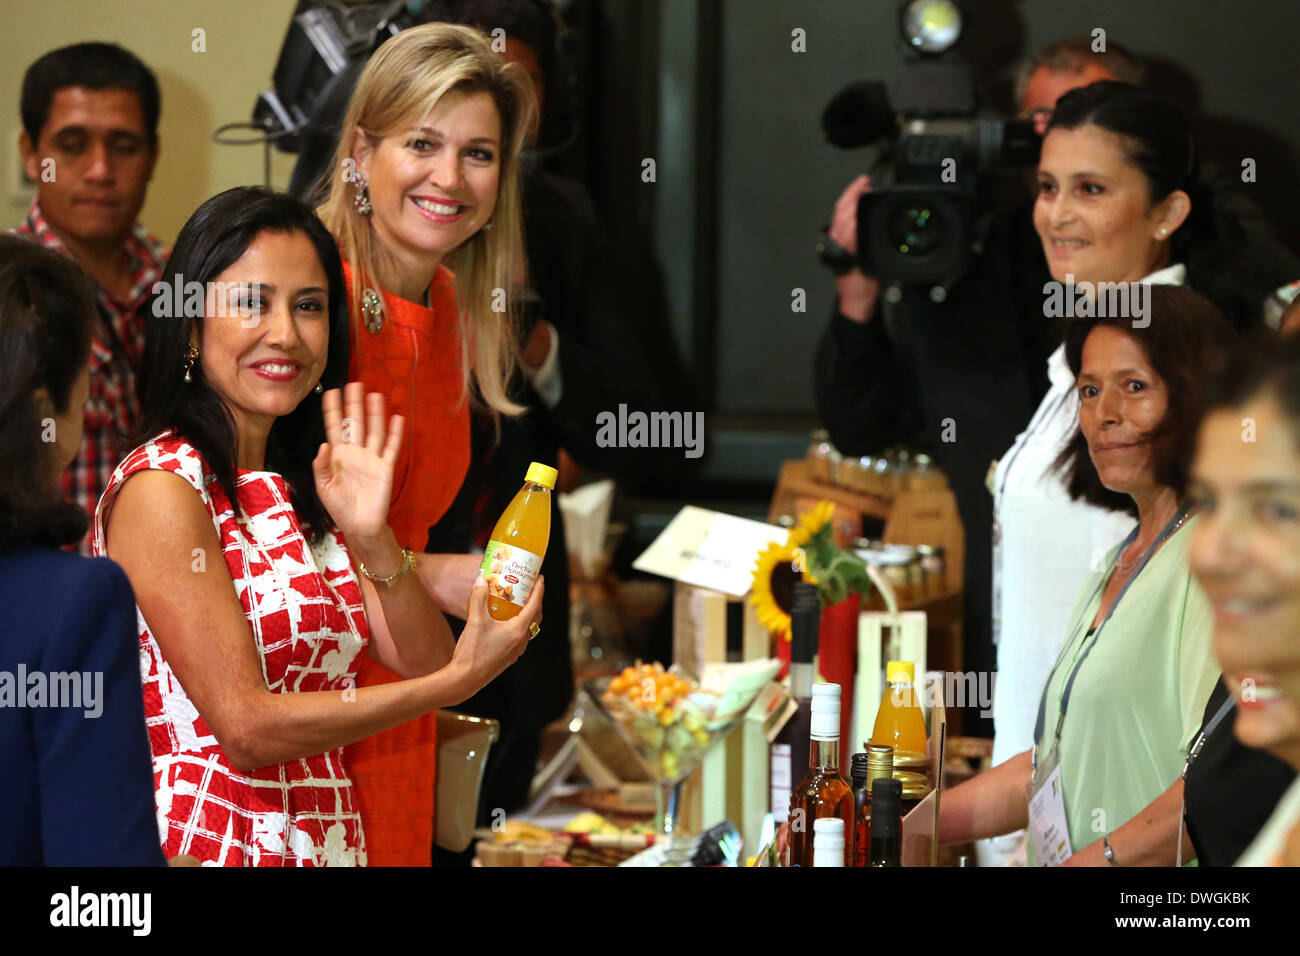 Alamy - Nadine Stock First Mar 67363959 2014 Heredia 7th Photo Lady Lima Peru Peruvian